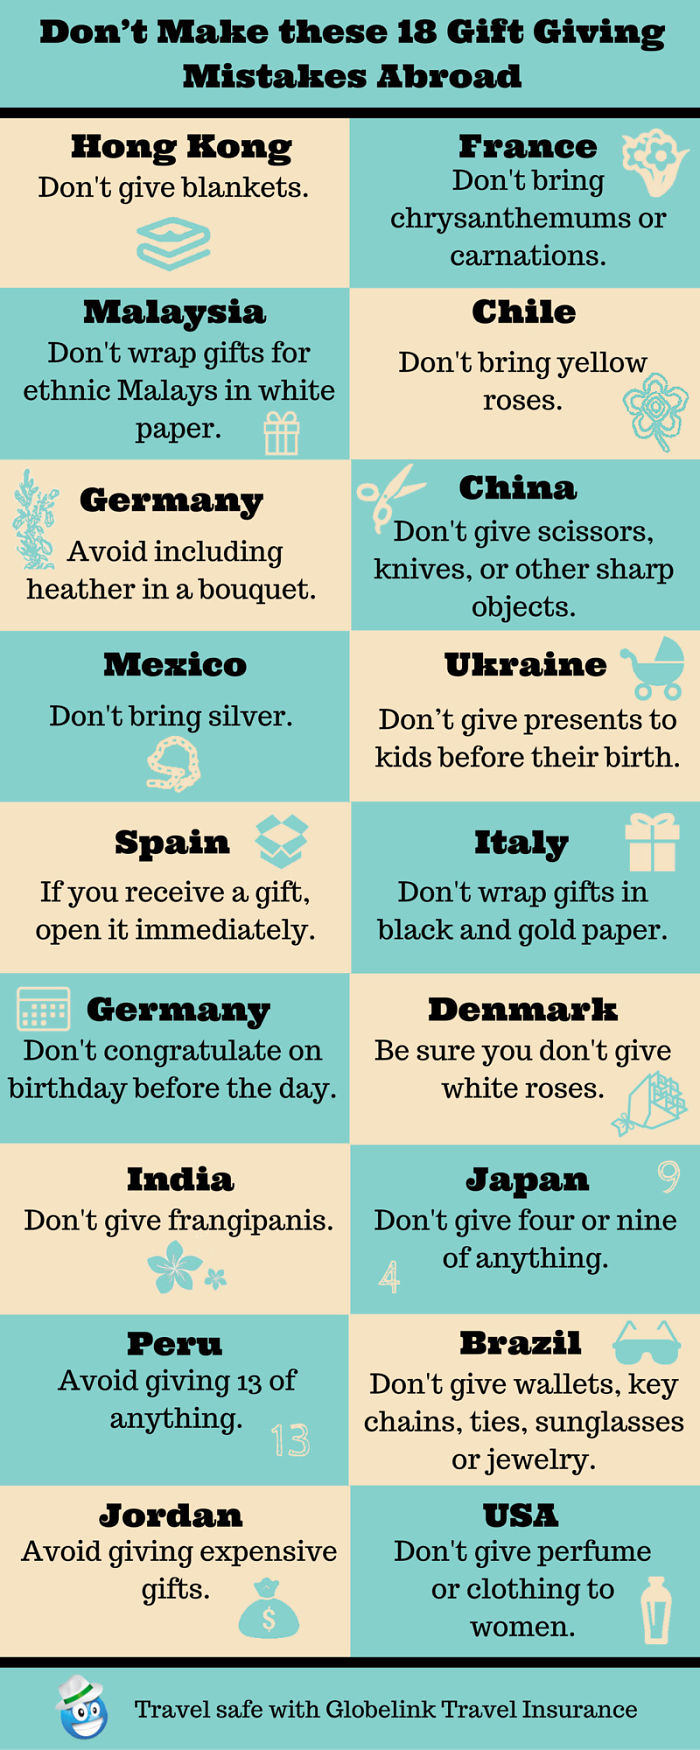 Don't Make These 18 Gift Giving Mistakes Abroad